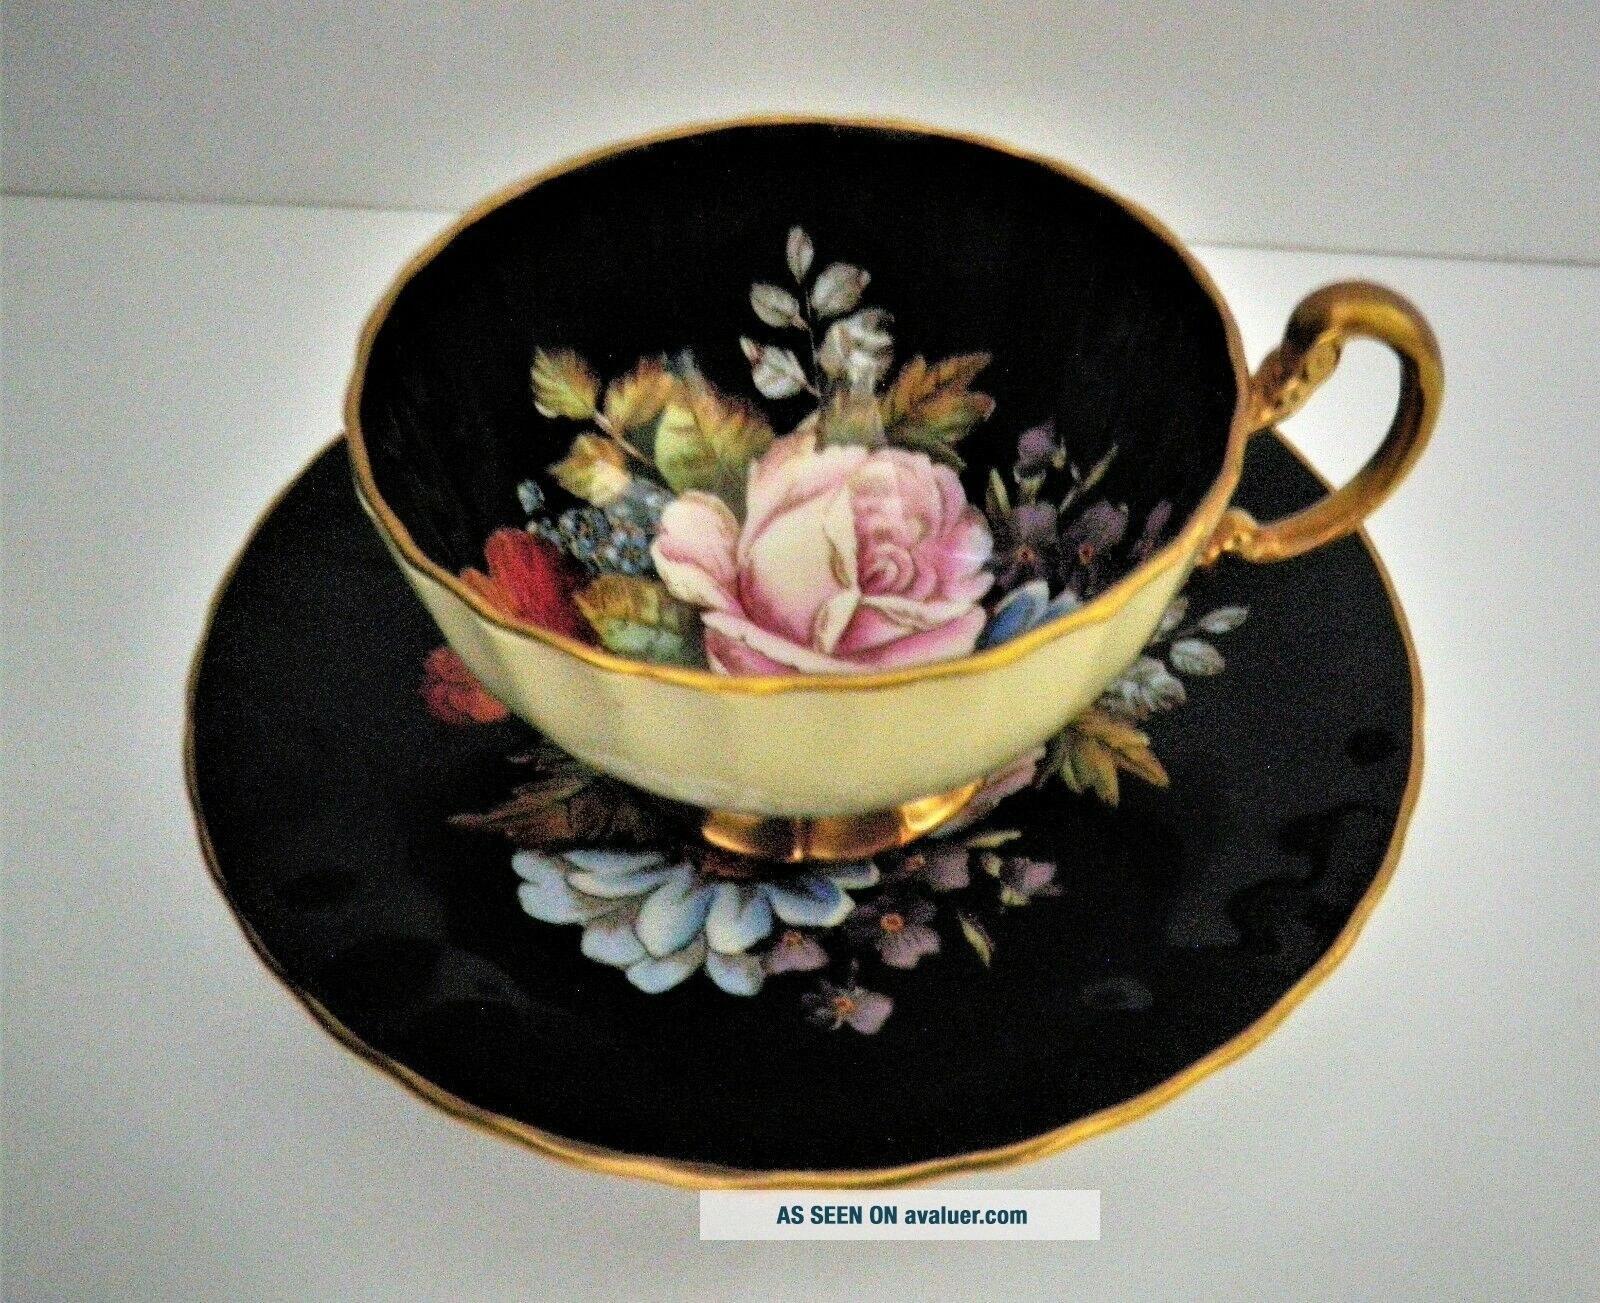 Rare Aynsley Black Oban Footed Cup & Saucer w Cabbage Rose Floral -